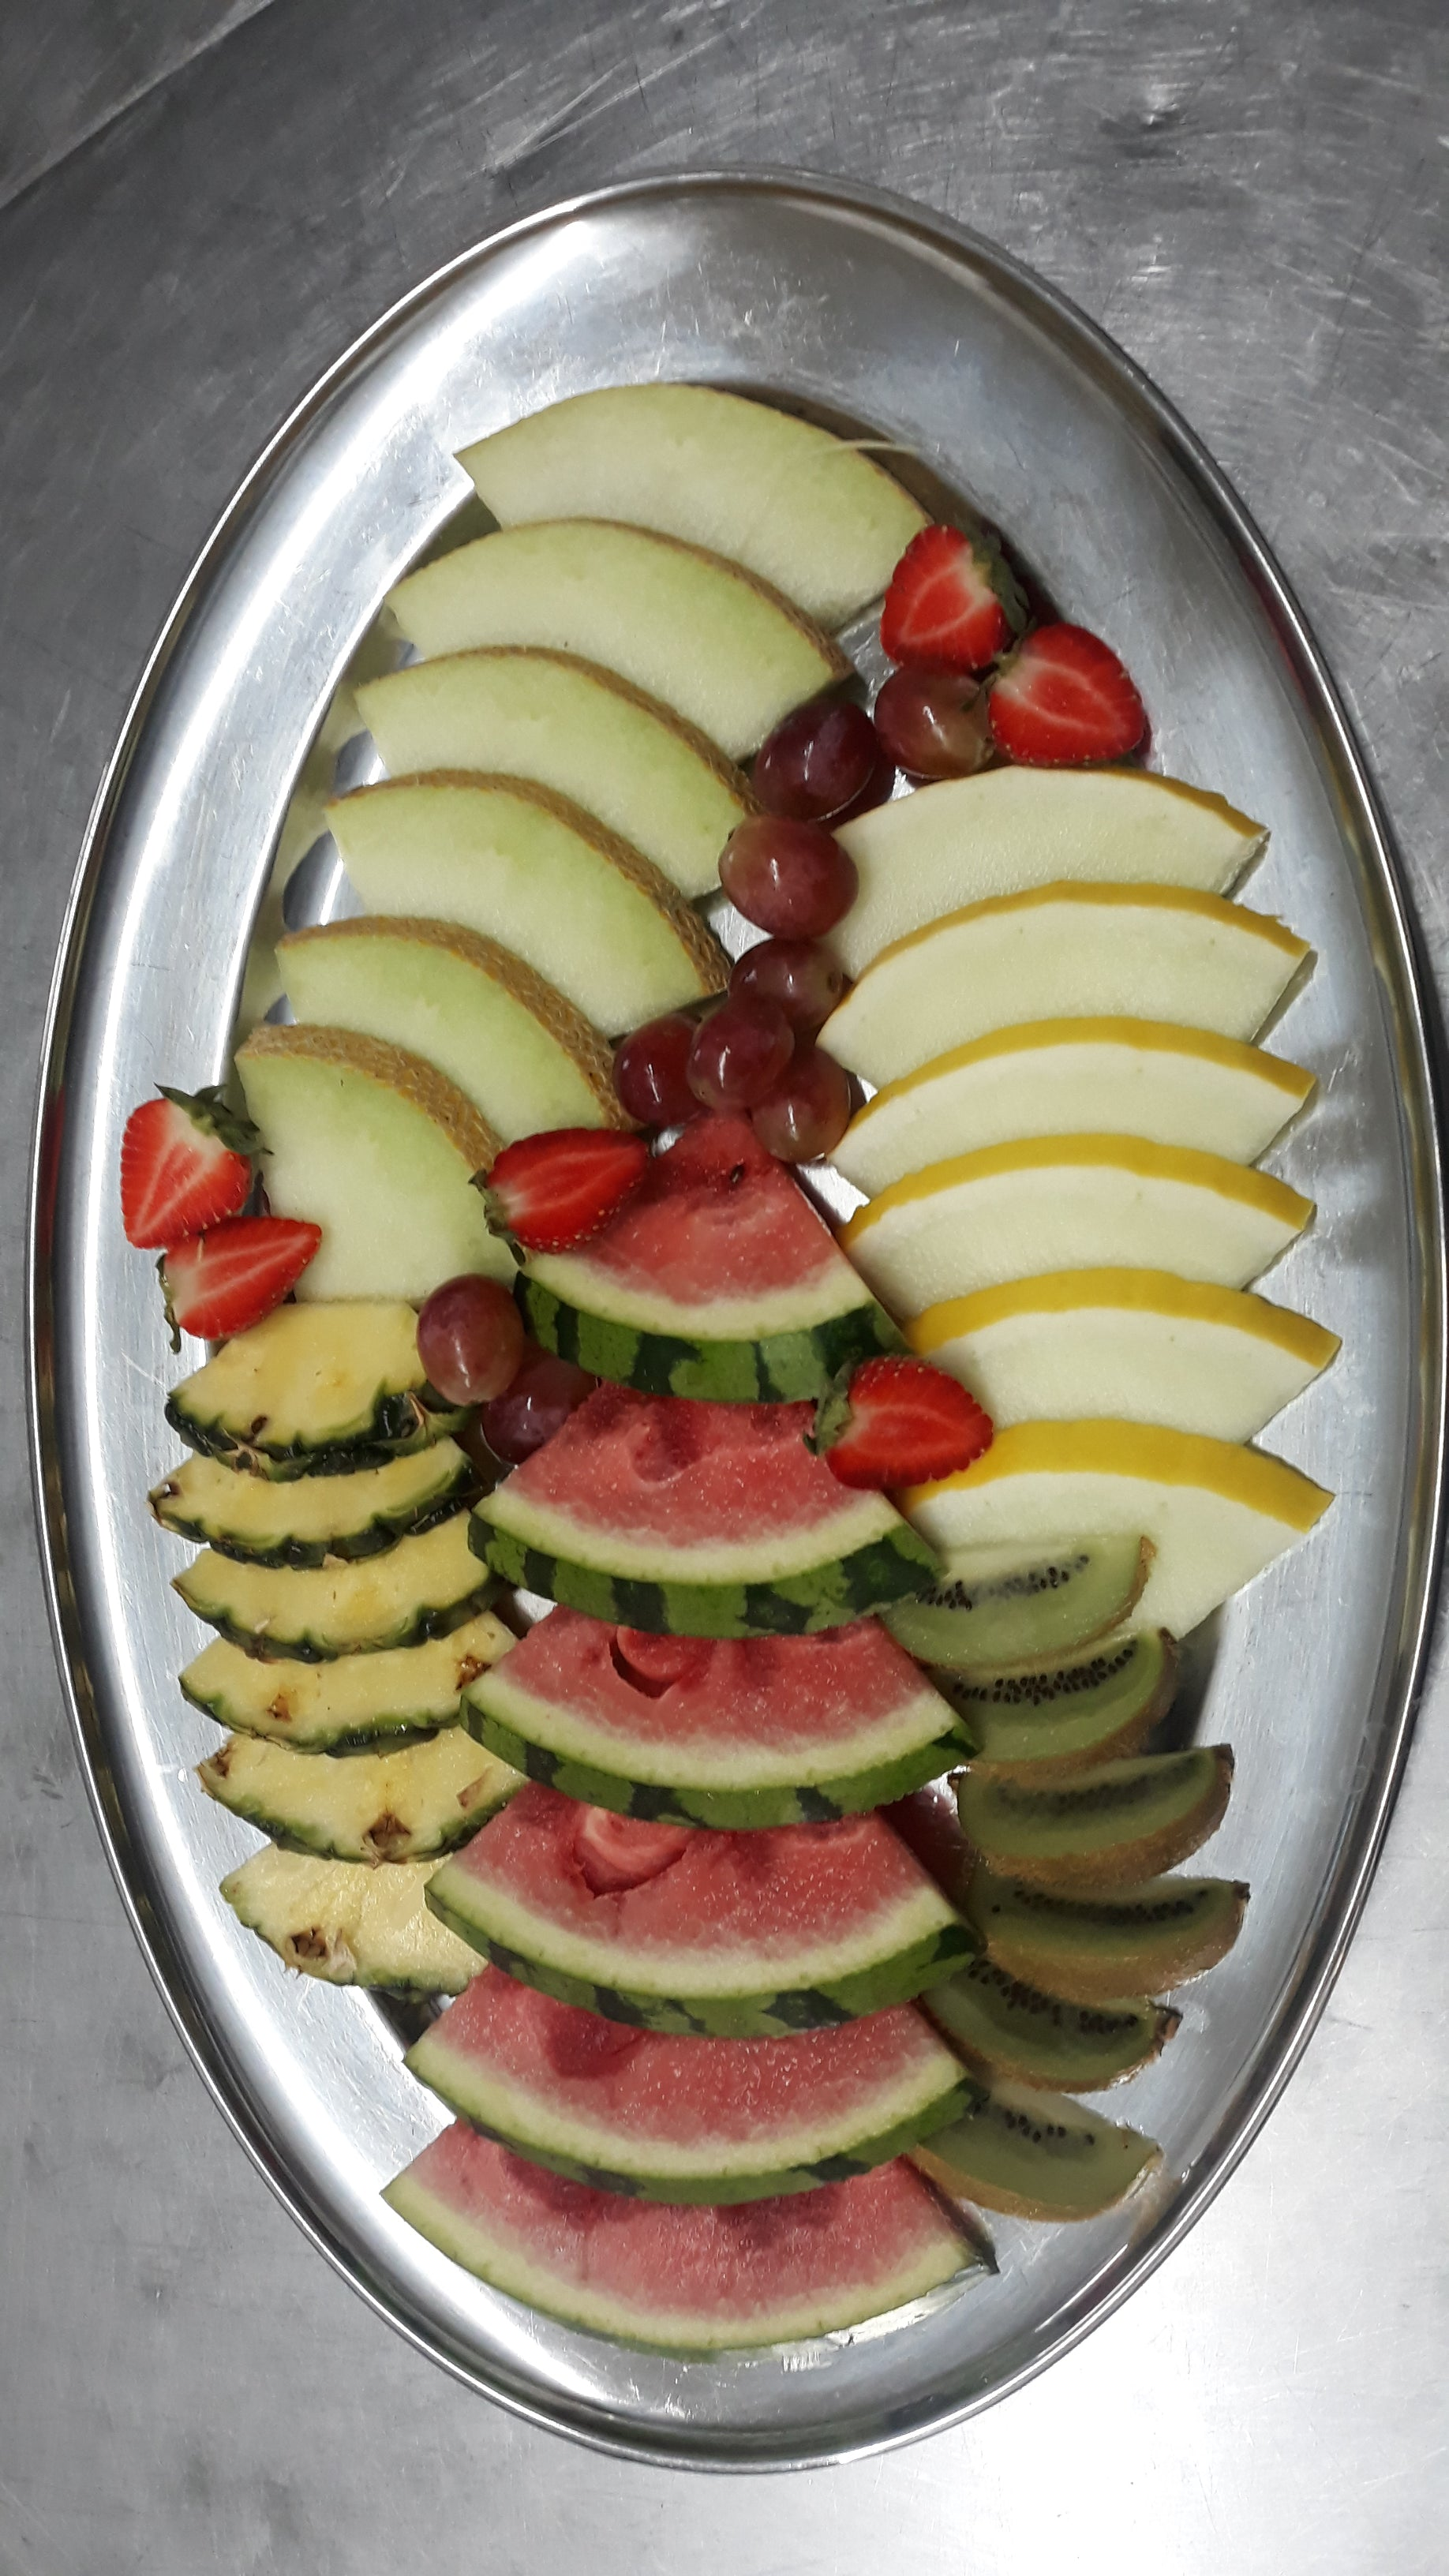 7 - Regular, classic sandwiches, wraps, savouries and fruit platter